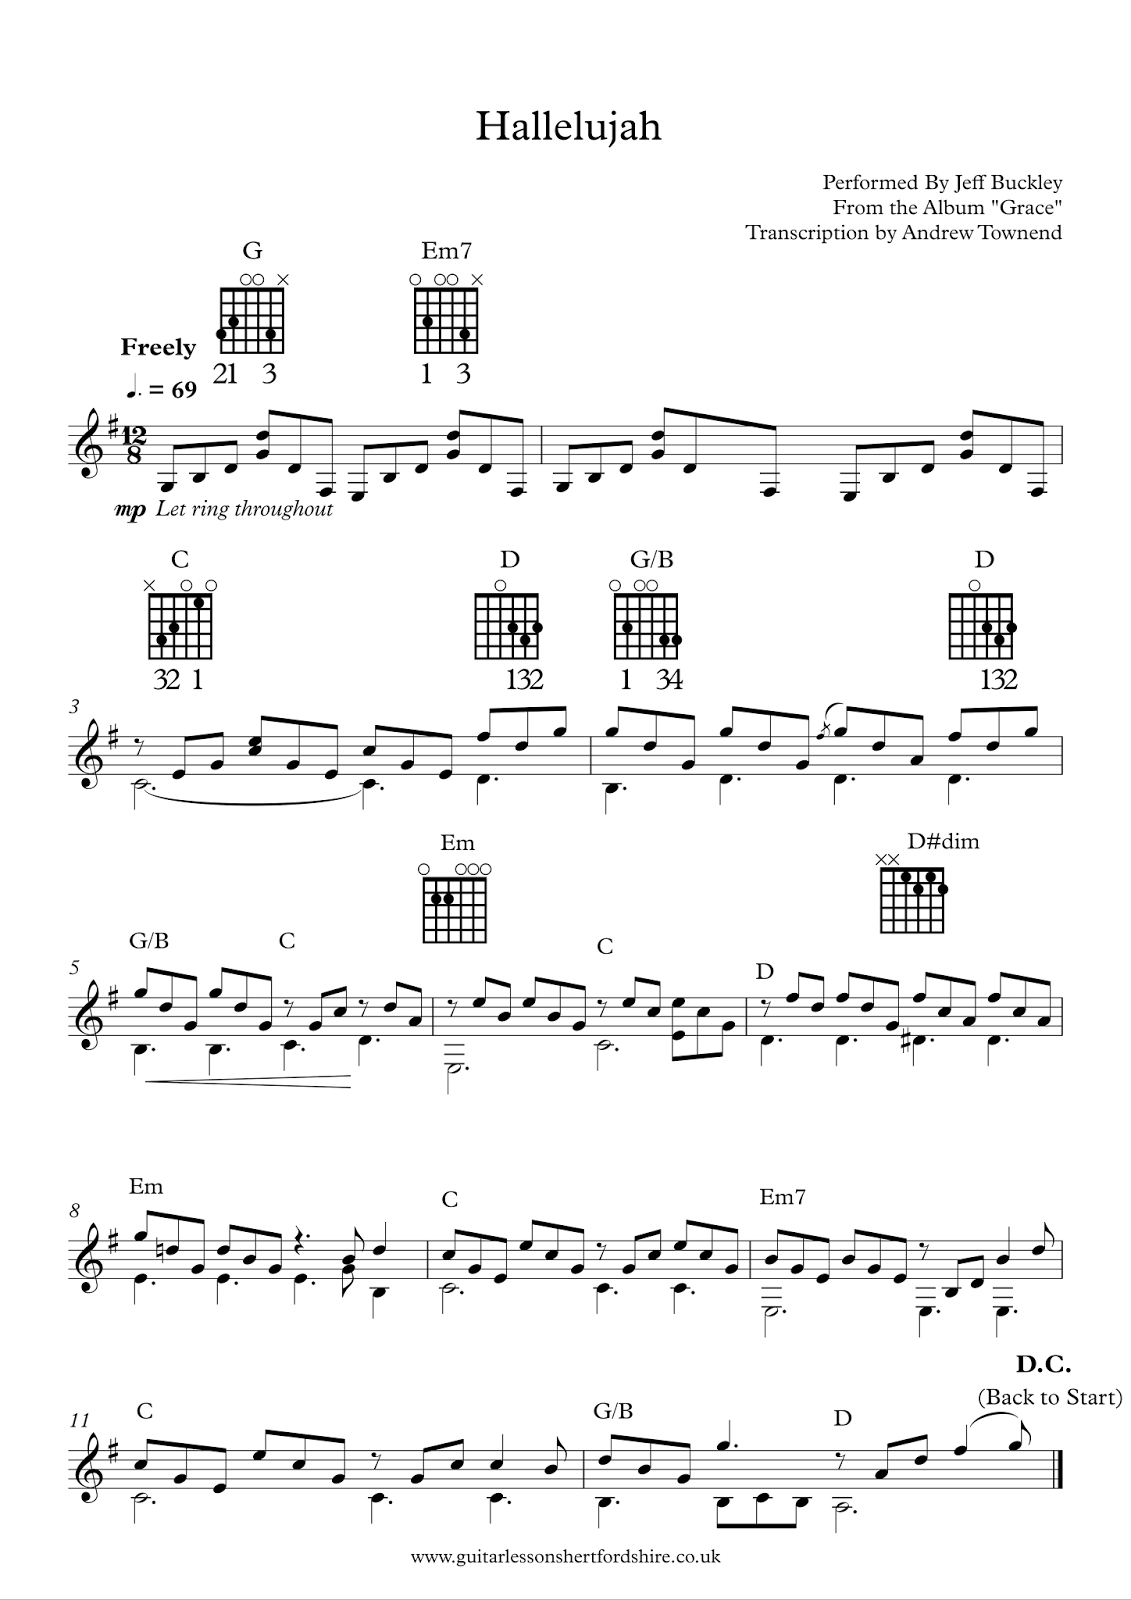 Hallelujah Guitar Chords Gallery Basic Guitar Chords Finger Placement